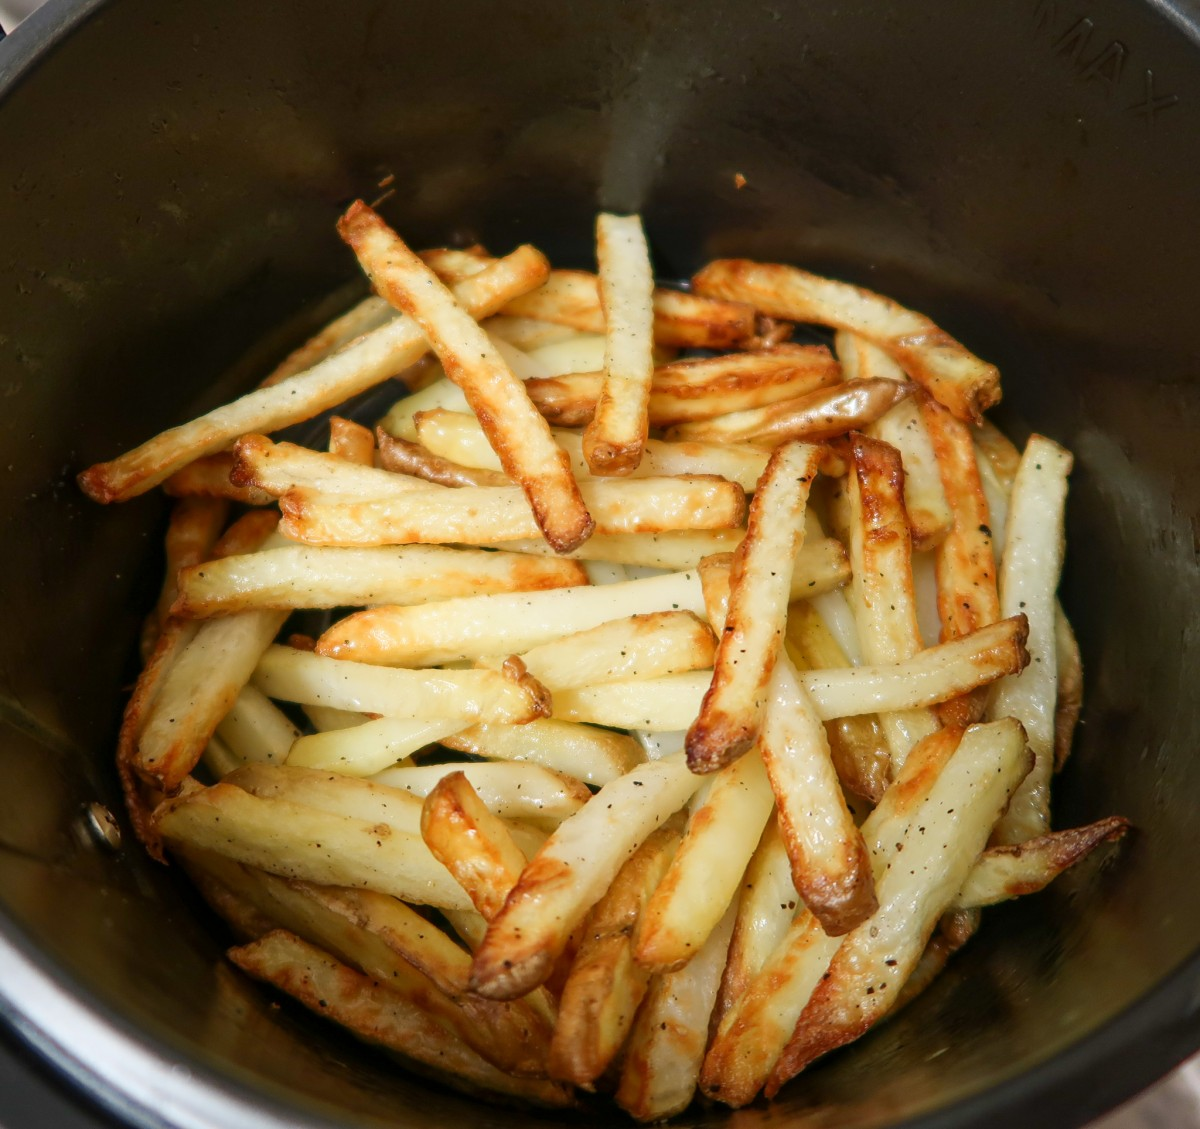 Air fryer fries while cooking in the air fryer basket